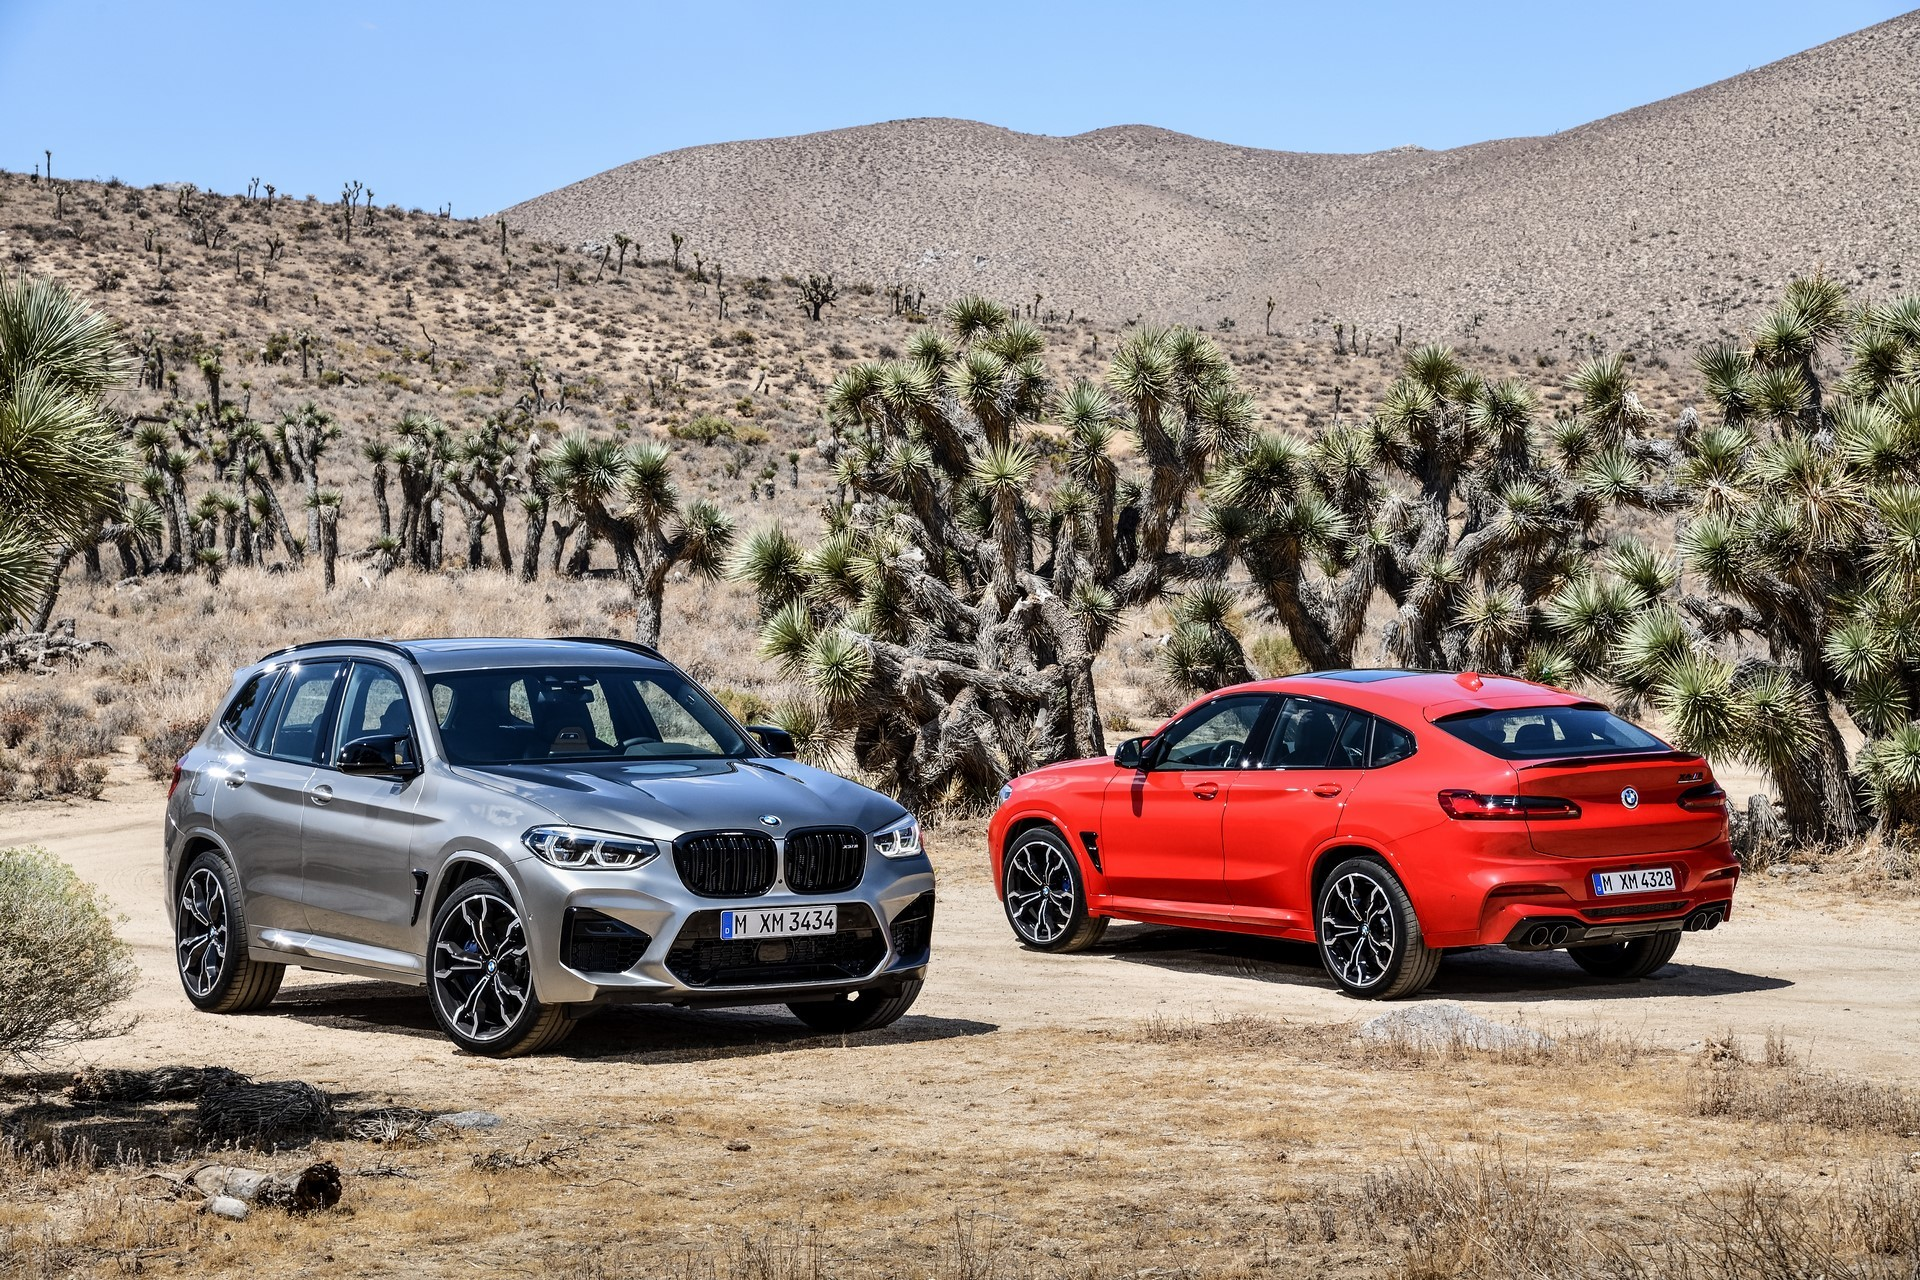 BMW X3 M and X4 M 2019 (105)